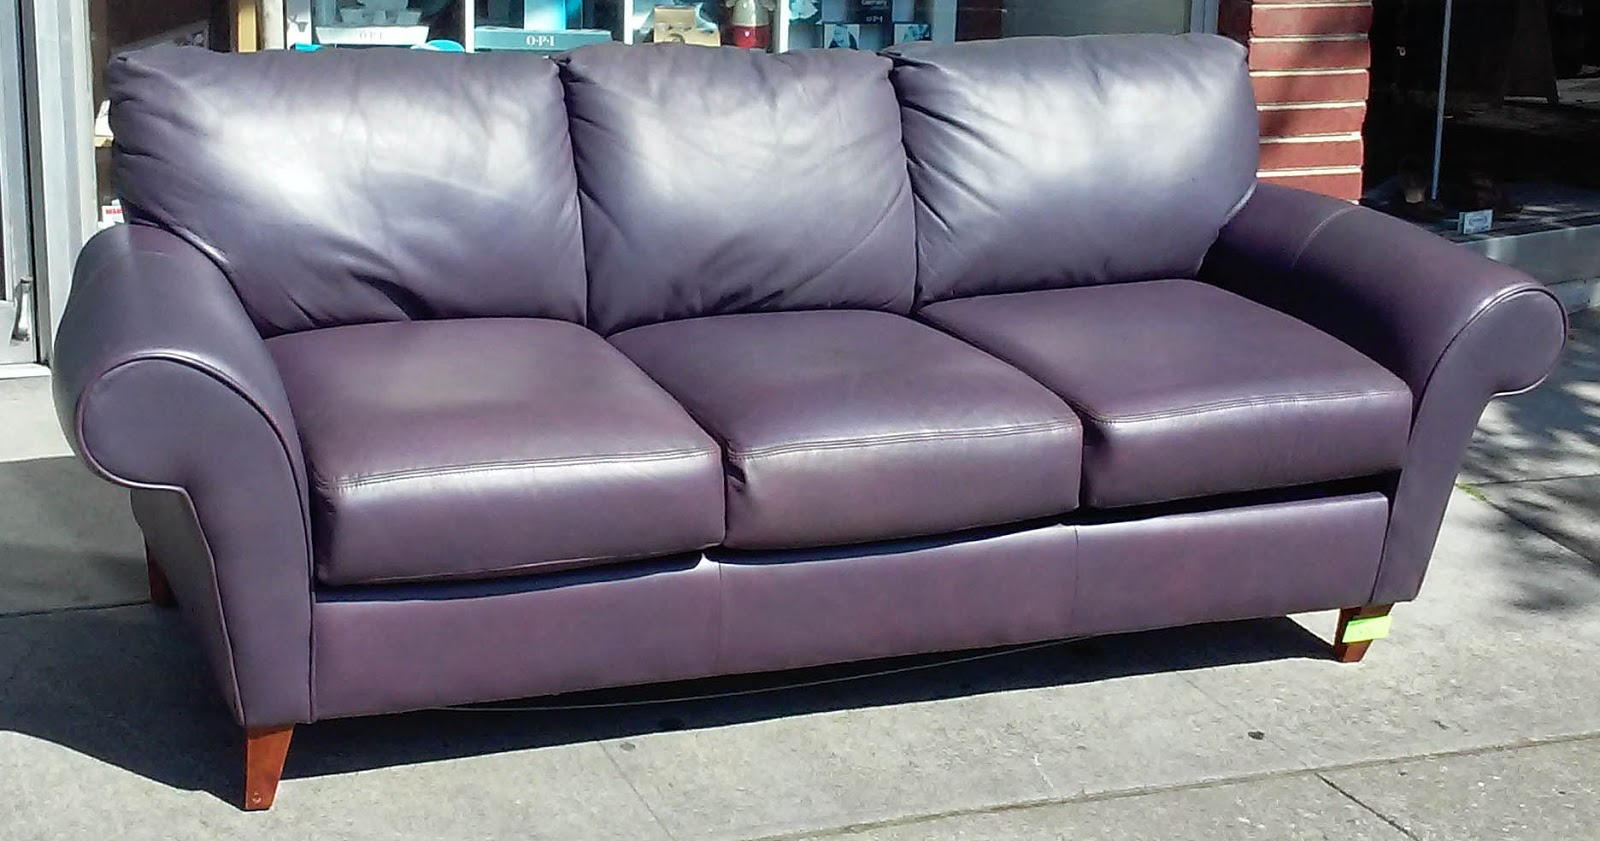 Plum Leather Sofa Sofas Uk Direct Uhuru Furniture And Collectibles Sold Bed